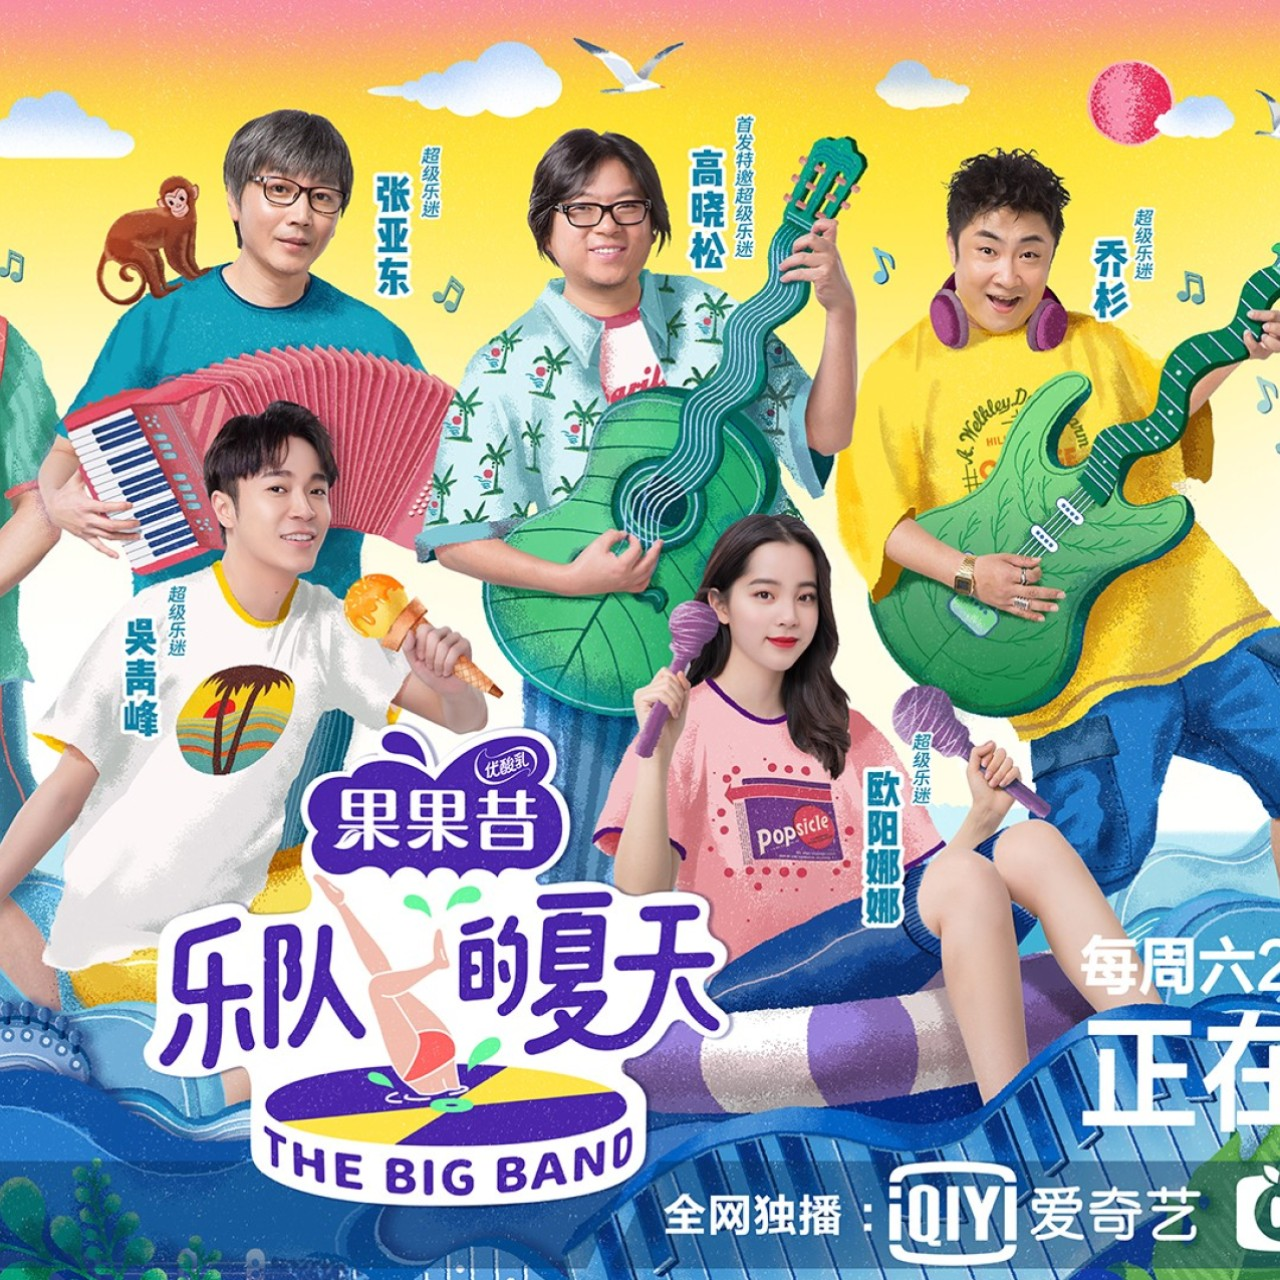 China's 'king of reality TV' on The Rap of China, and how indie